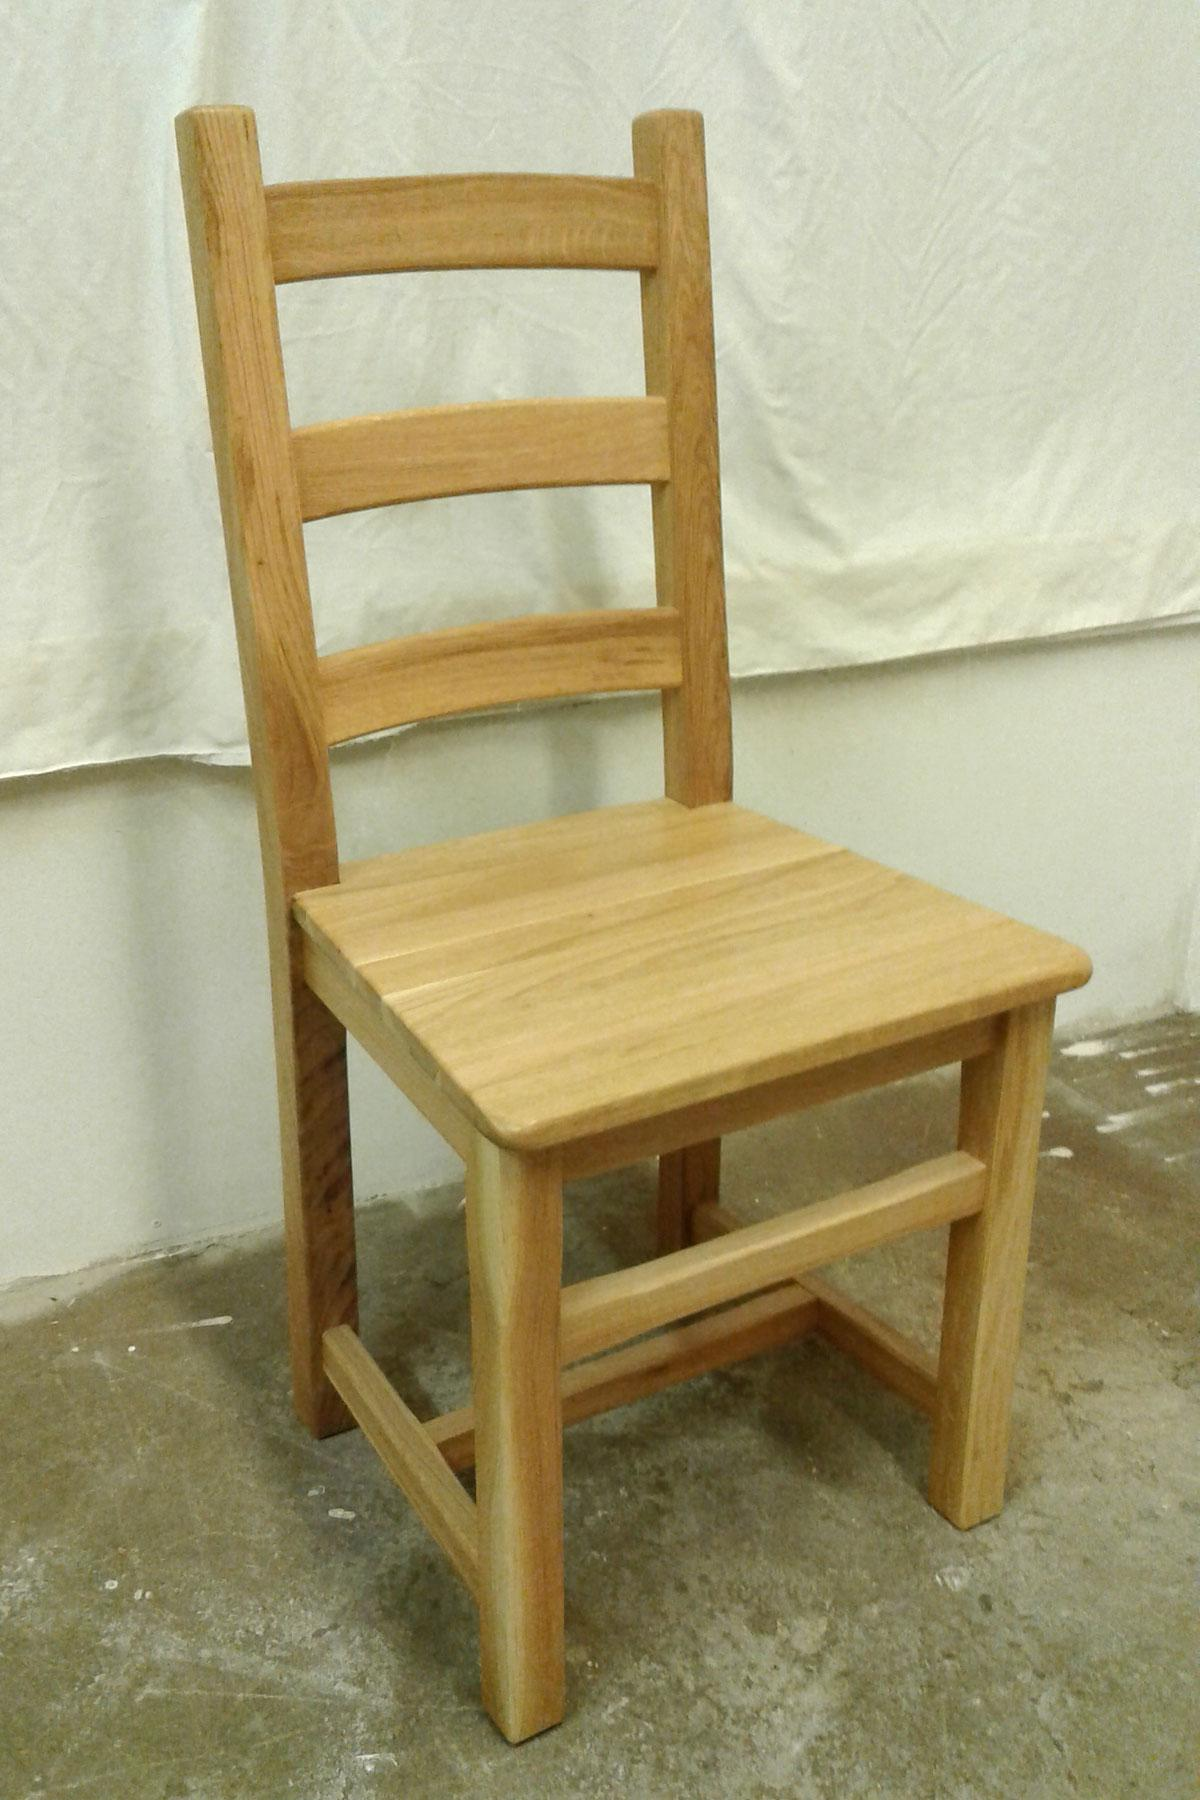 pine kitchen chairs for sale duncan phyfe chair oak in barnstaple north devon